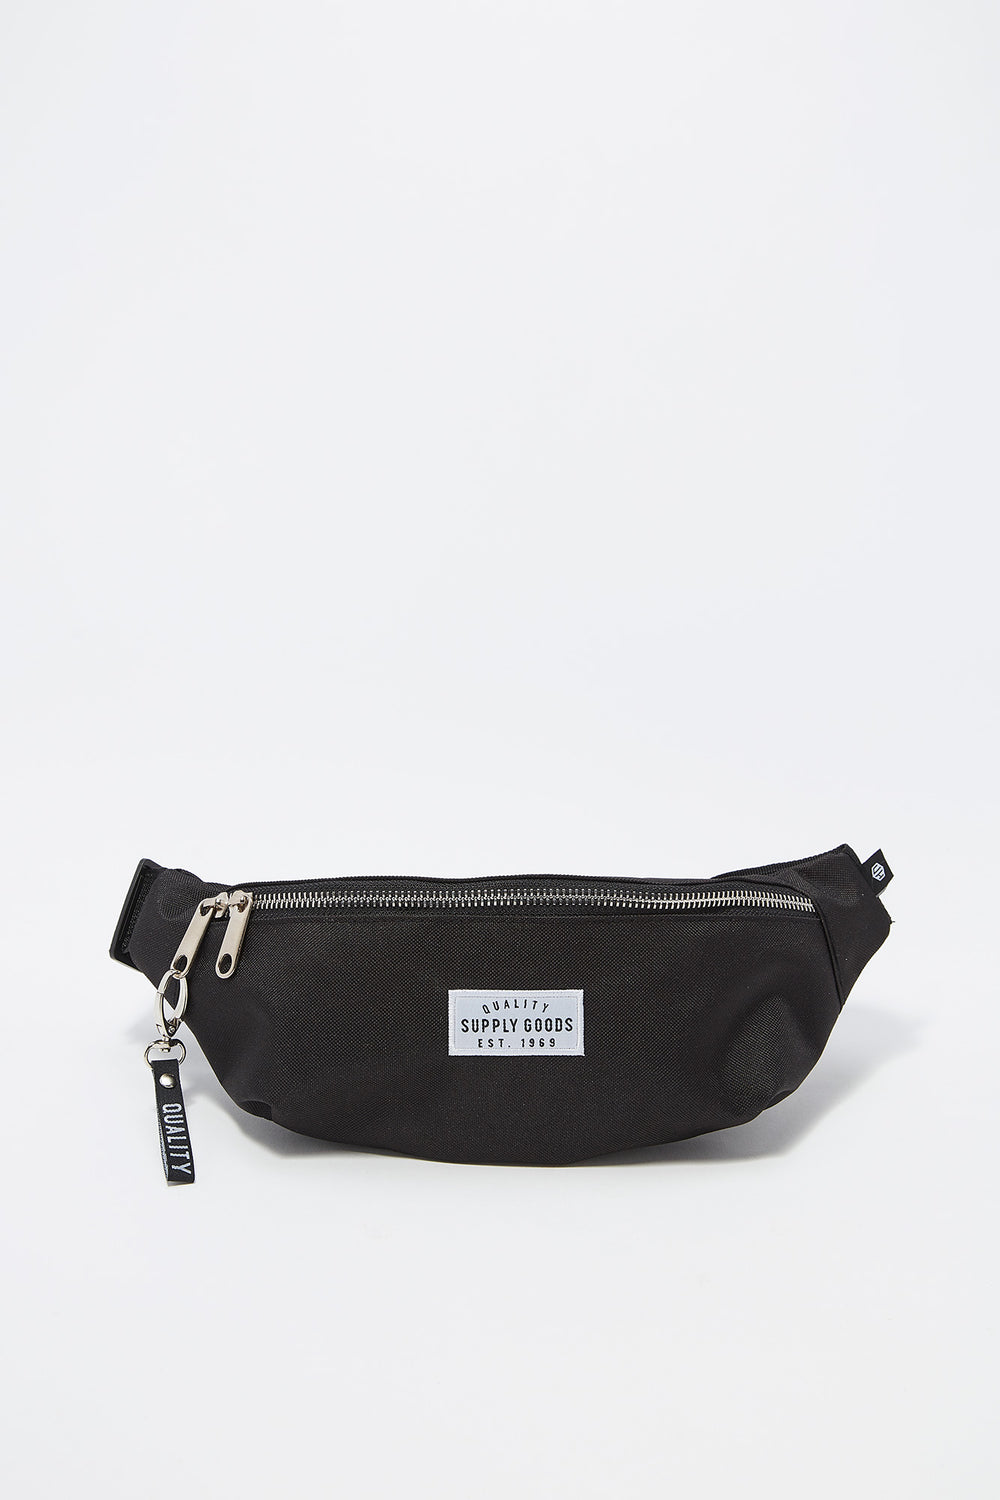 Quality Supply Goods Graphic Curved Fanny Pack Black